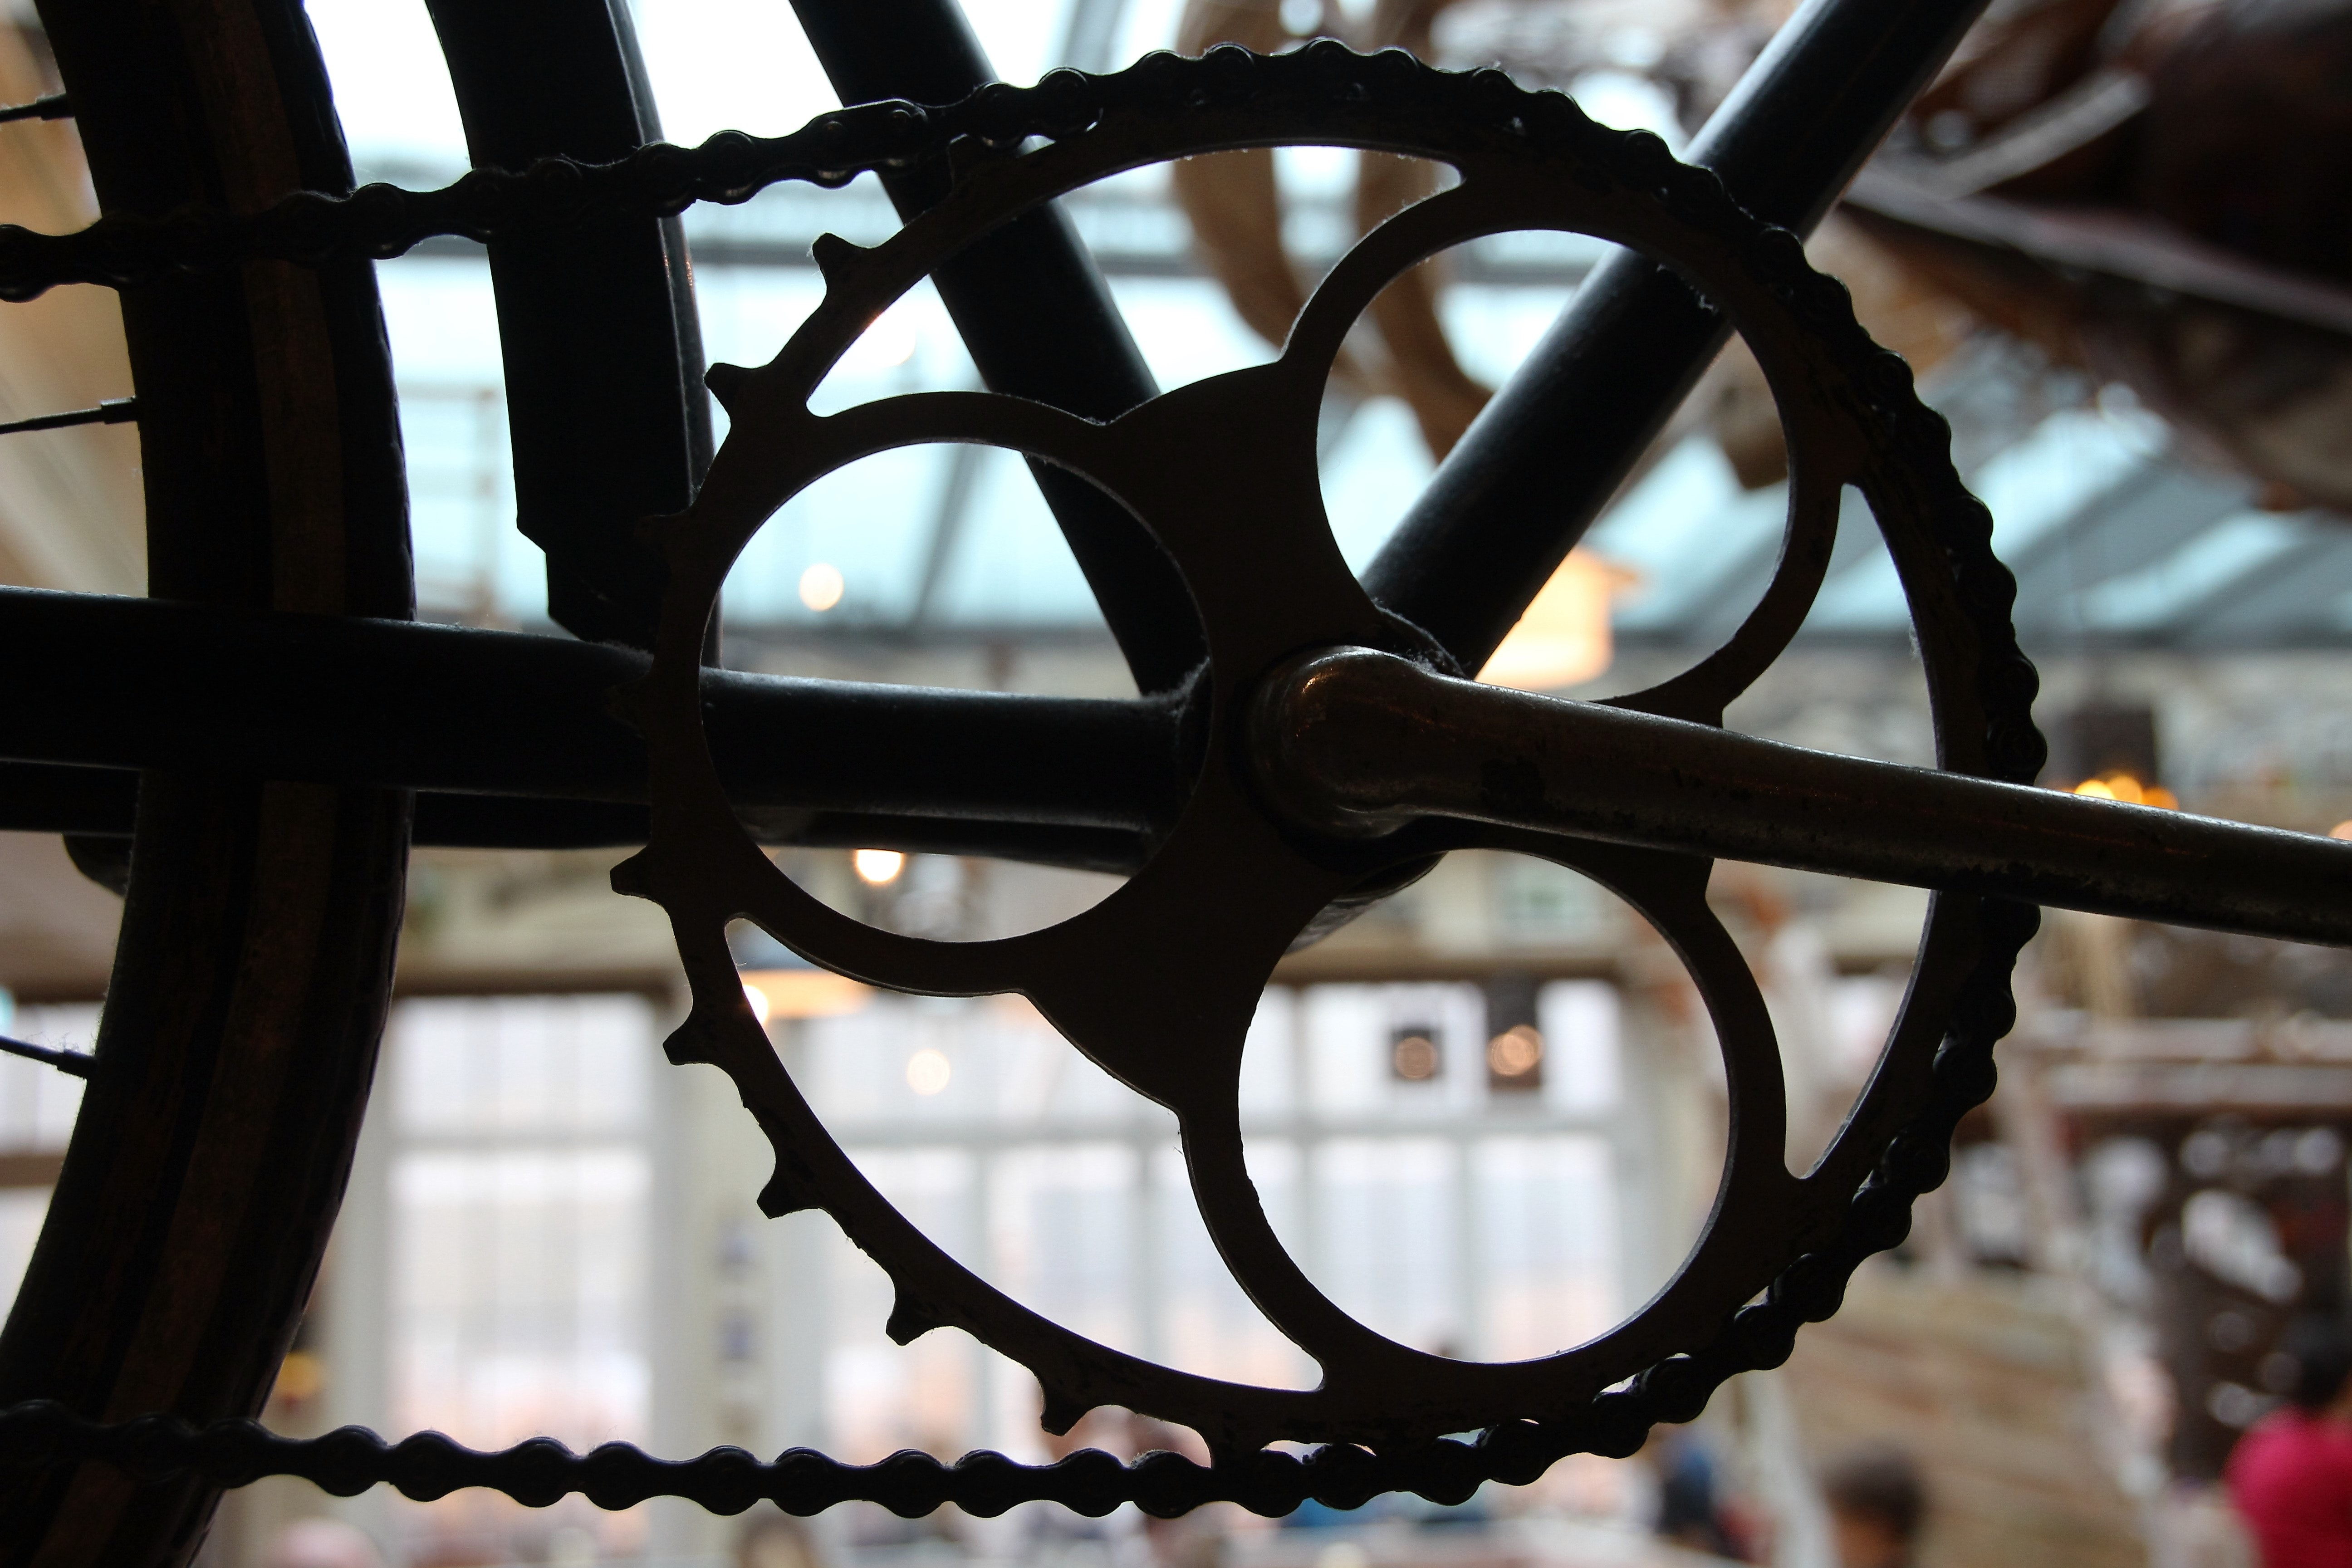 Close-up of a Gear, Bicycle, Bicycle frame, Blur, Chain, HQ Photo